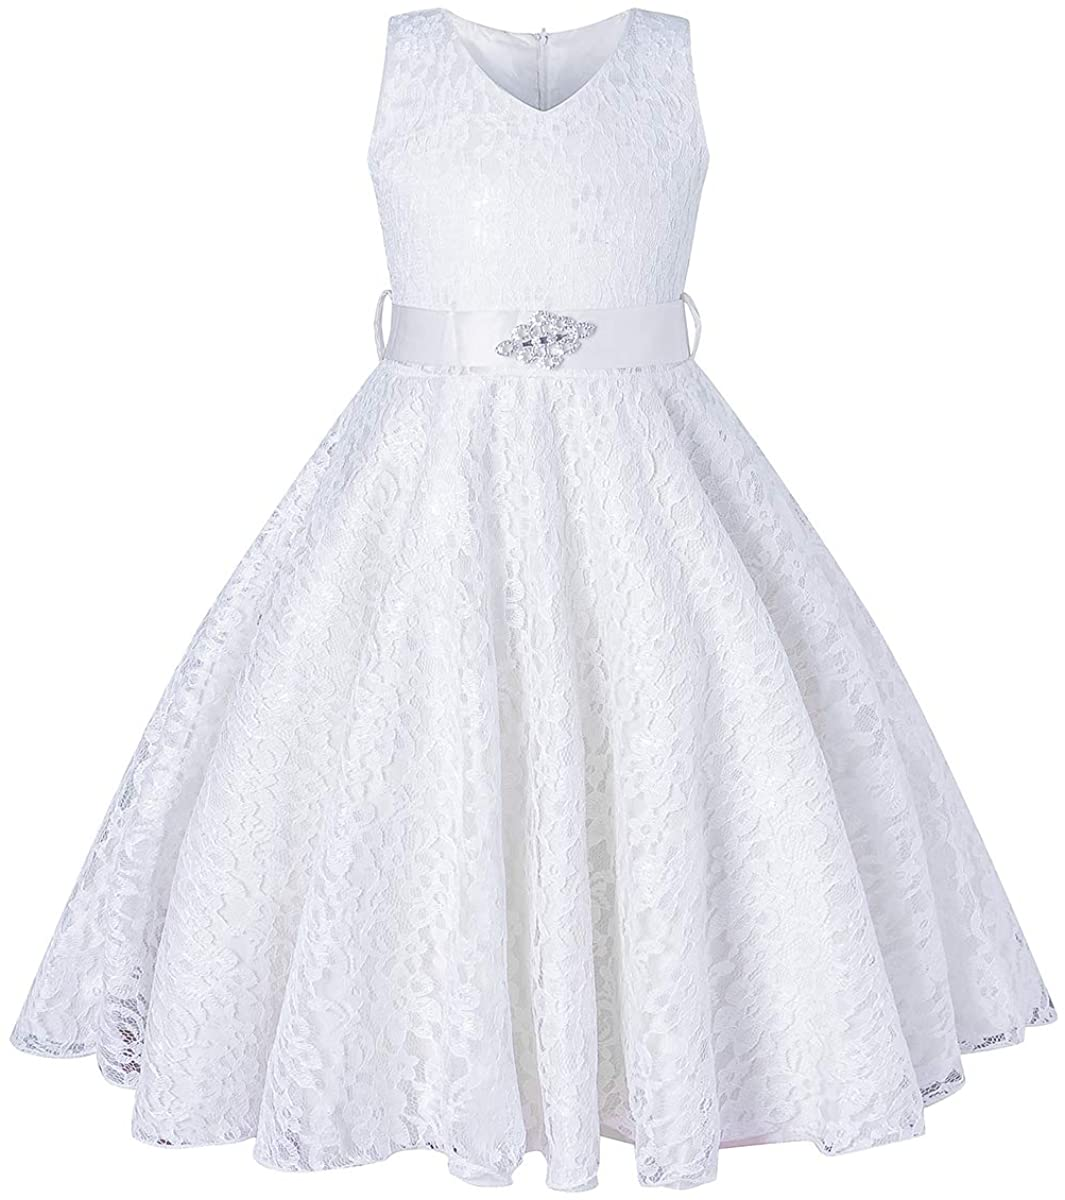 BEAUTY CHARM online shopping Girls Tulle Lace Glitter Prom Vintage Purchase Dress Pageant